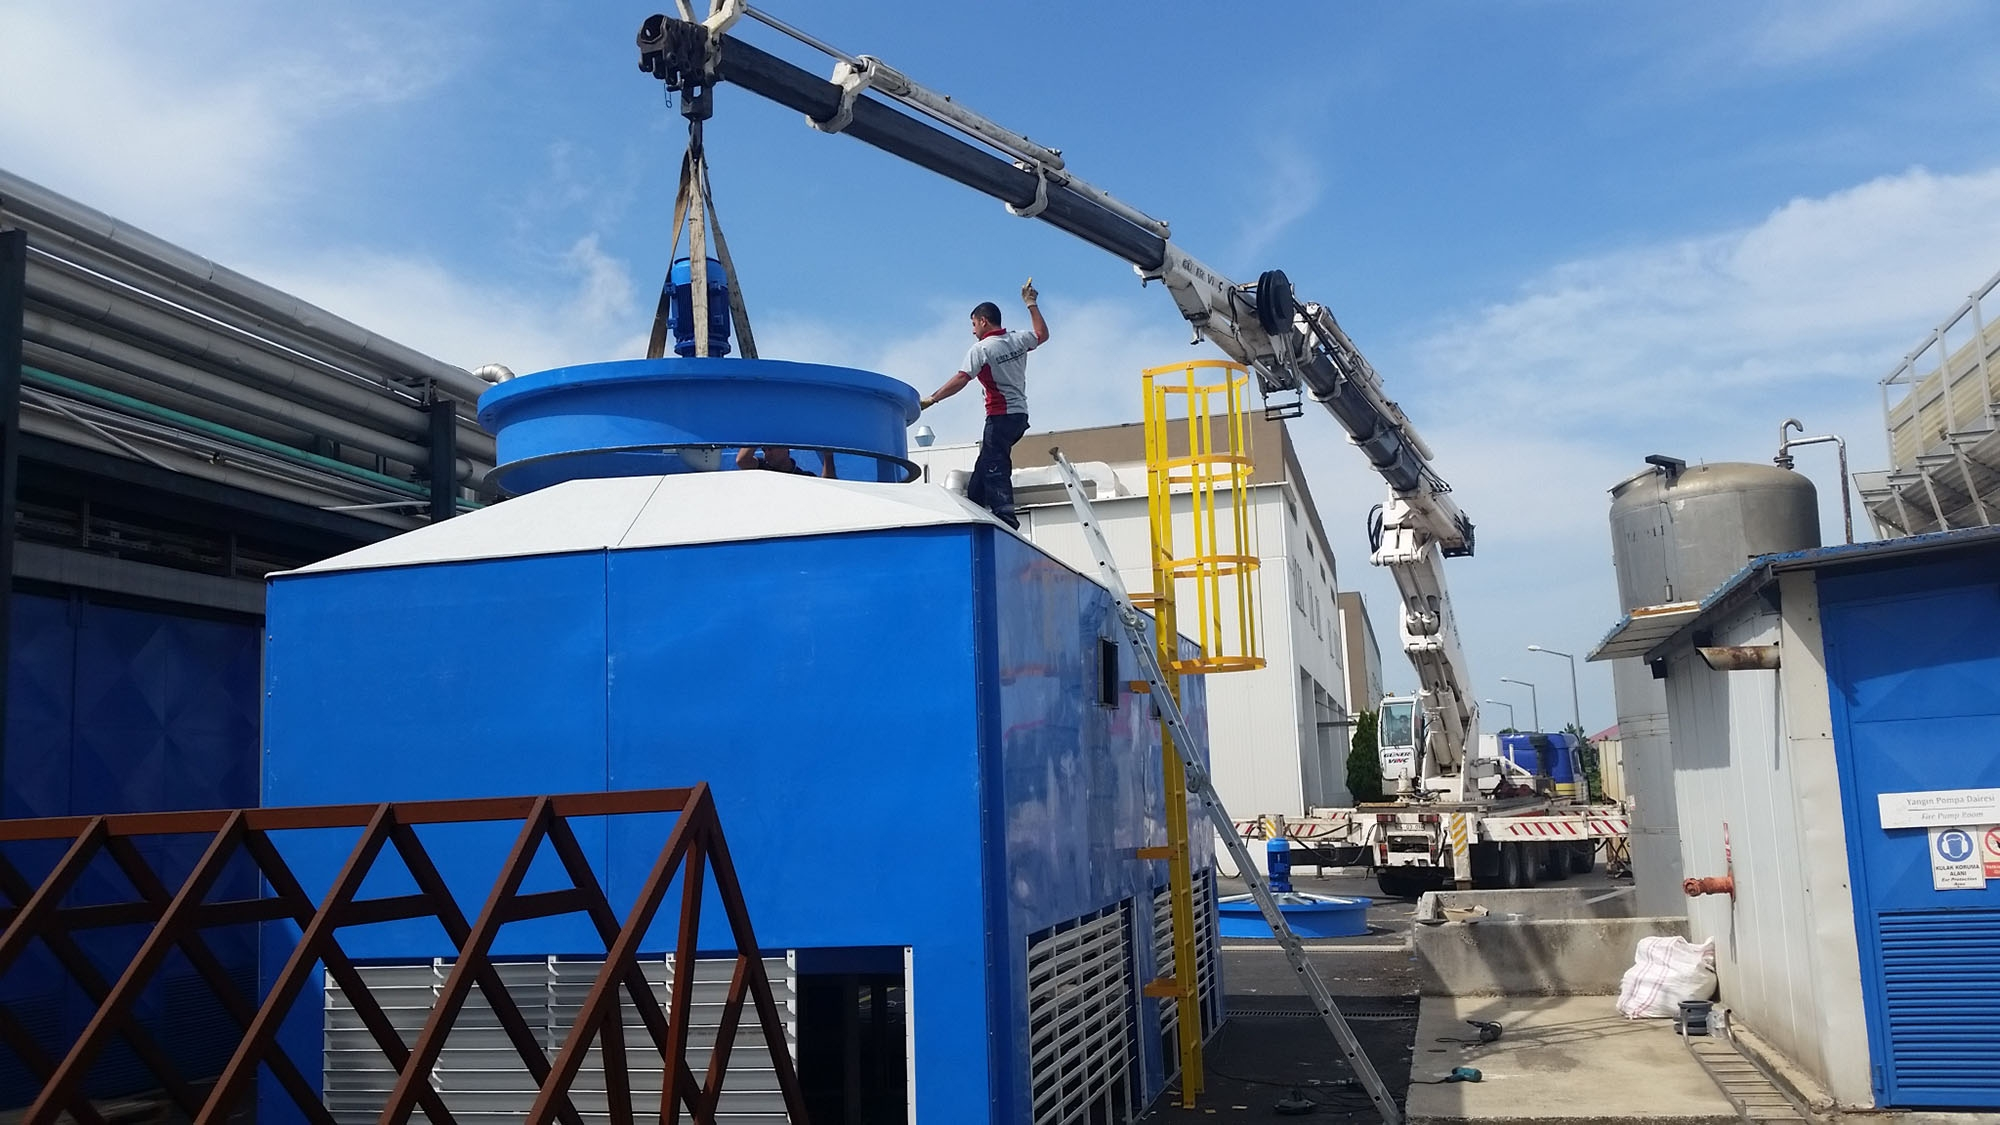 Shipping Cooling Tower,Process Cooling Tower,Shipping Process,Energy Saving Industrial Process Cooling System,Shipping Closed Circuit Cooling Tower, Evaporative Condenser